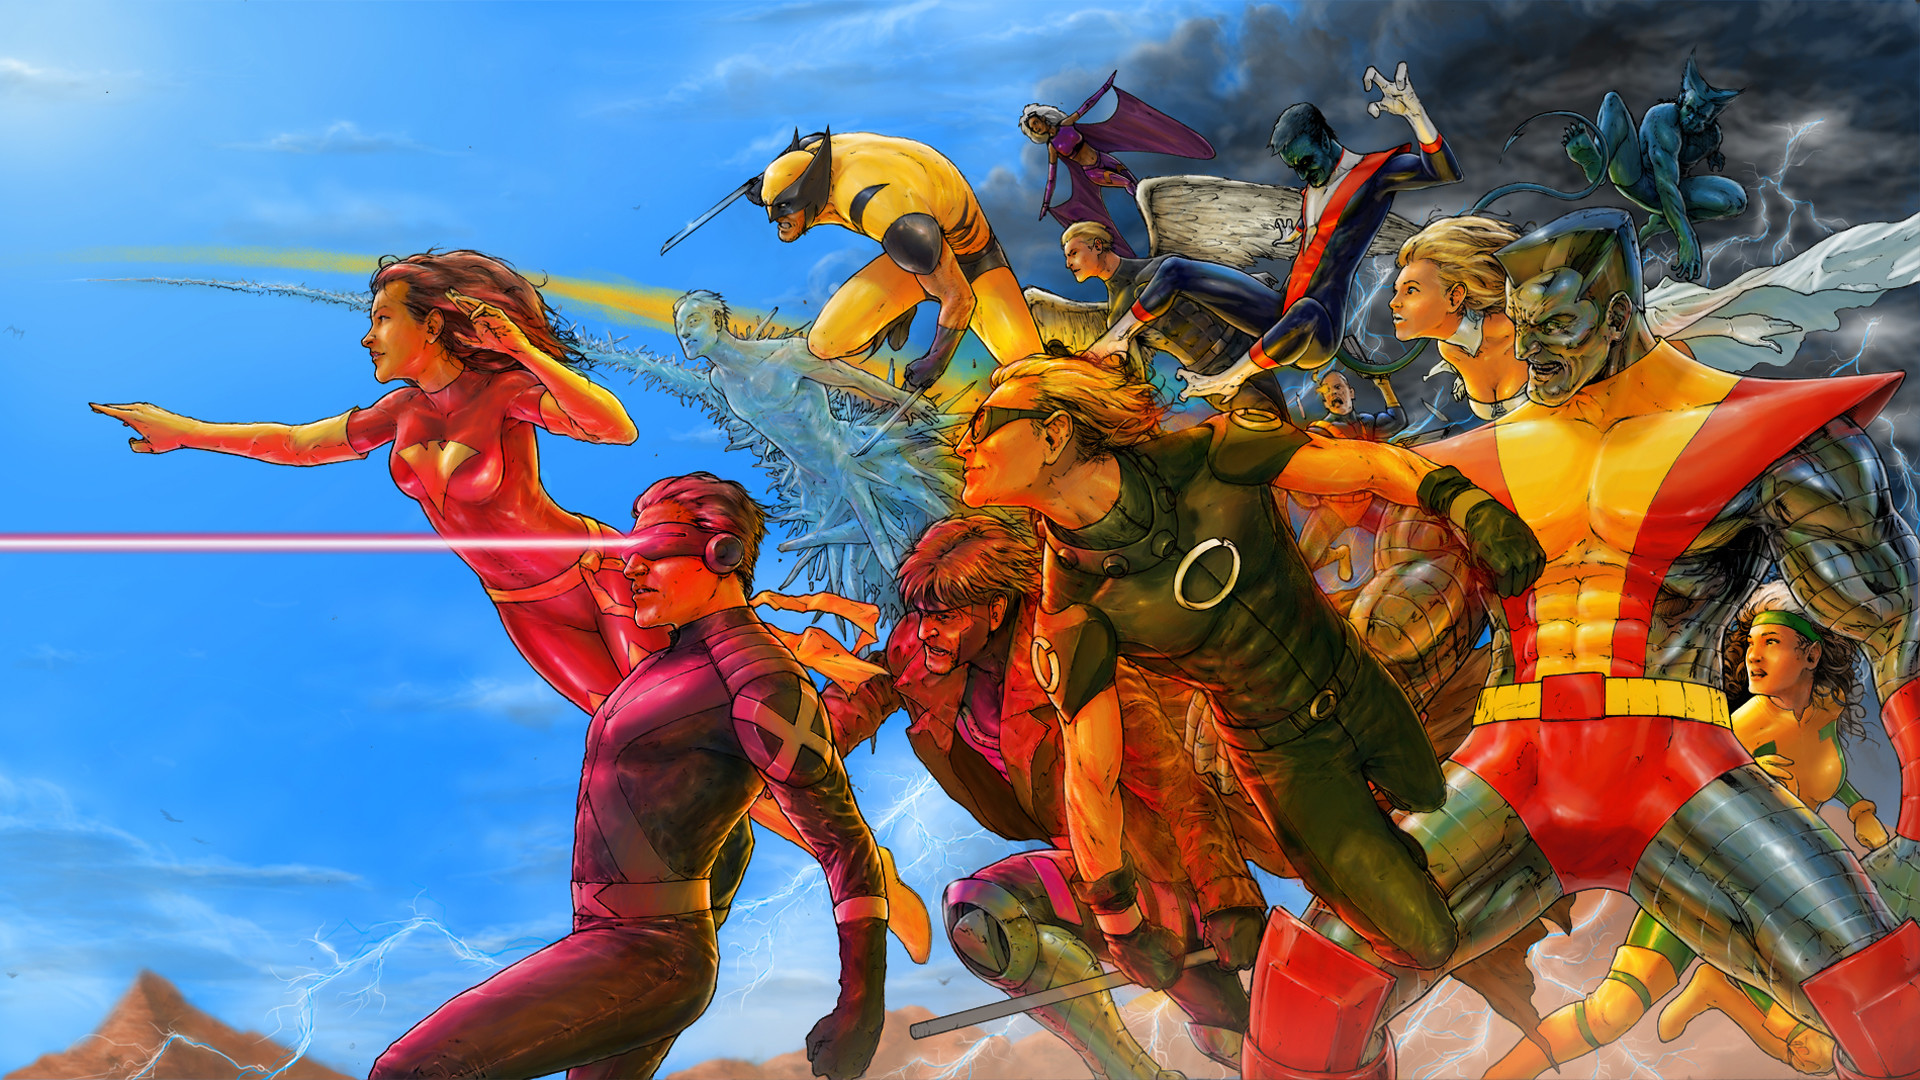 Top Wallpaper Marvel Xmen - 1030661-xmen-wallpapers-1920x1080-pictures  Perfect Image Reference_11569.jpg